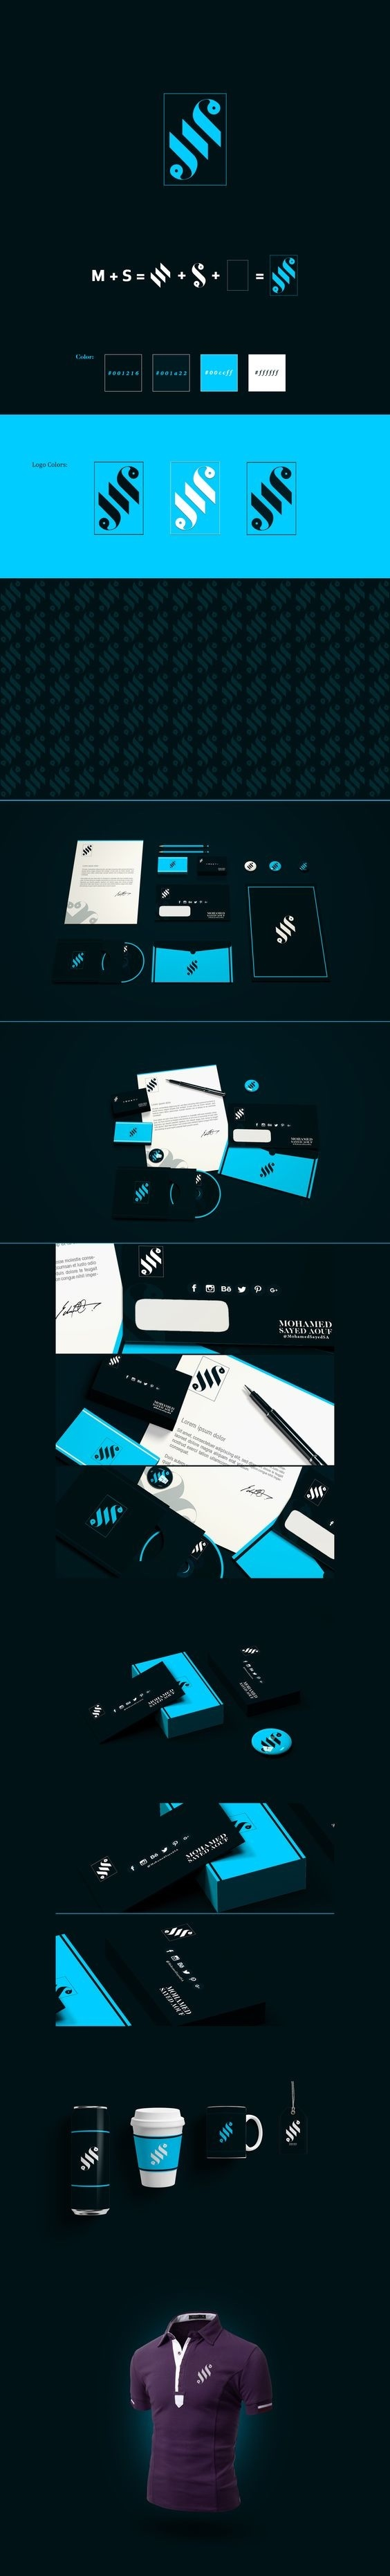 Best Monogram Branding Golf Ms Personal images on Designspiration